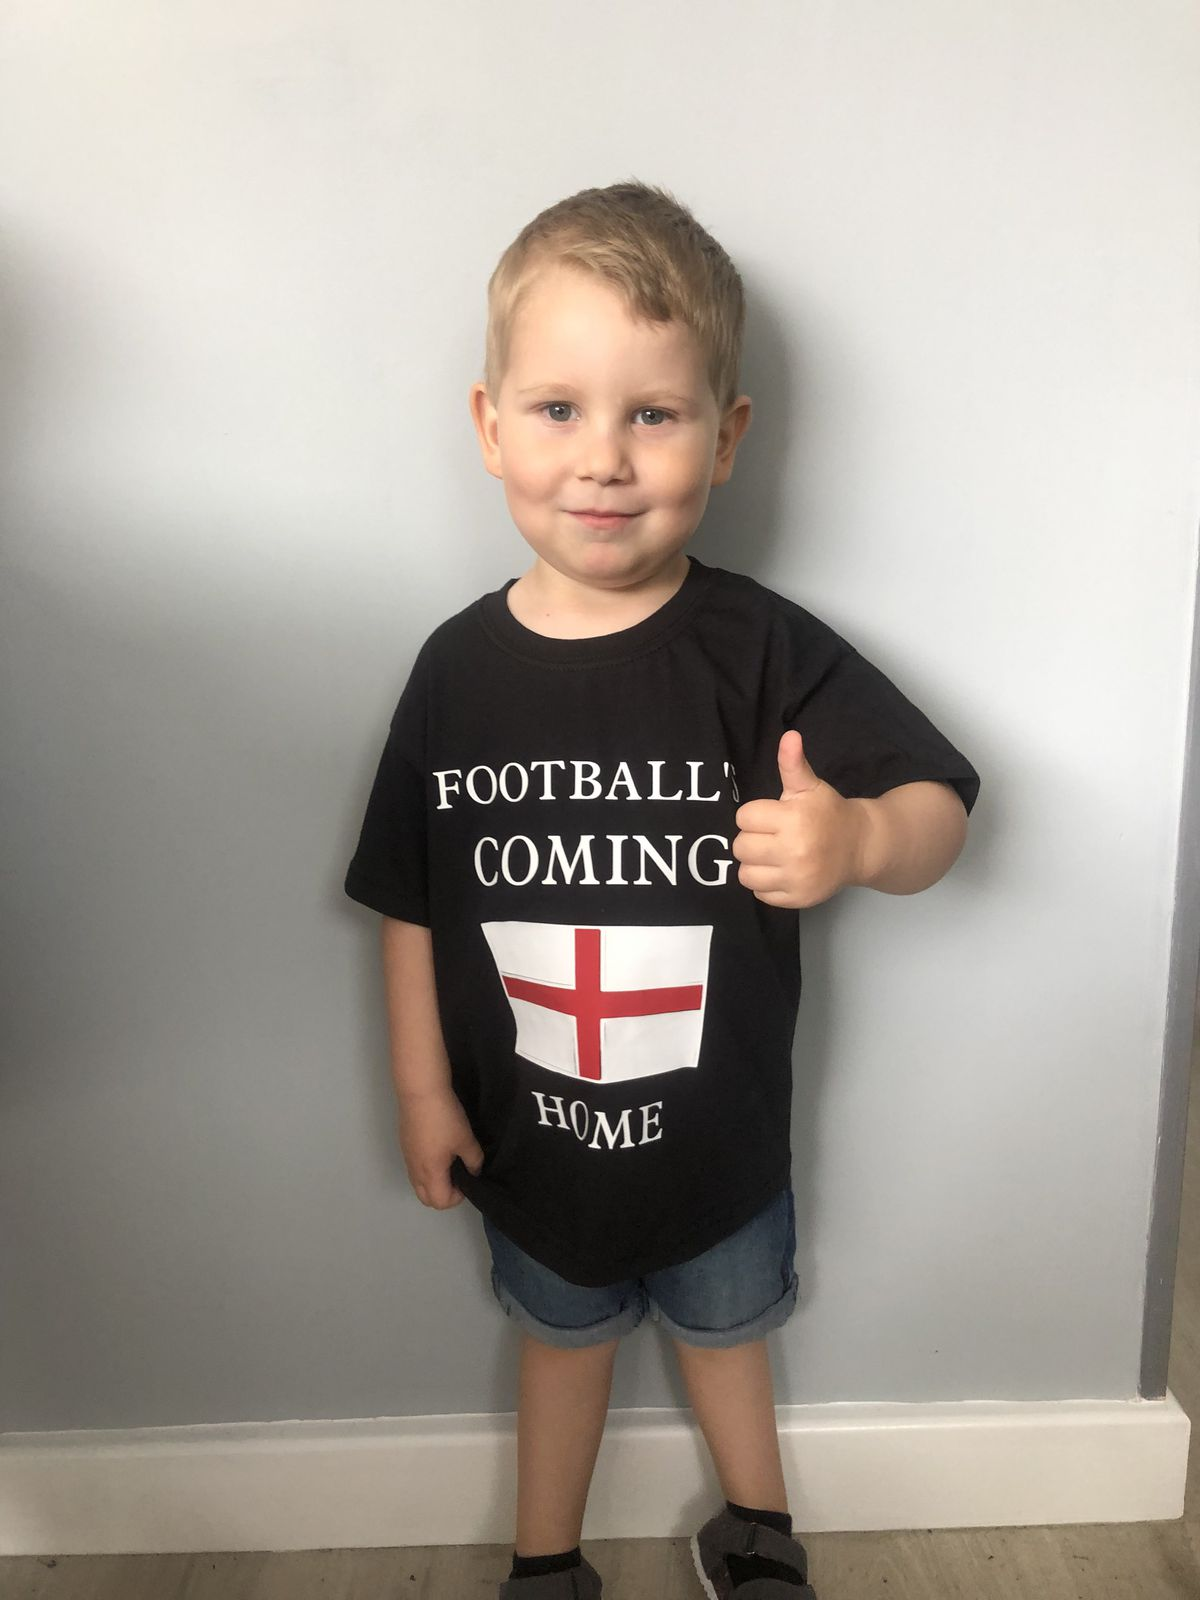 Lucas looking forward to the big game. Being half English and half Italian its coming home either way to our house, said mum Samantha from Wolverhampton.